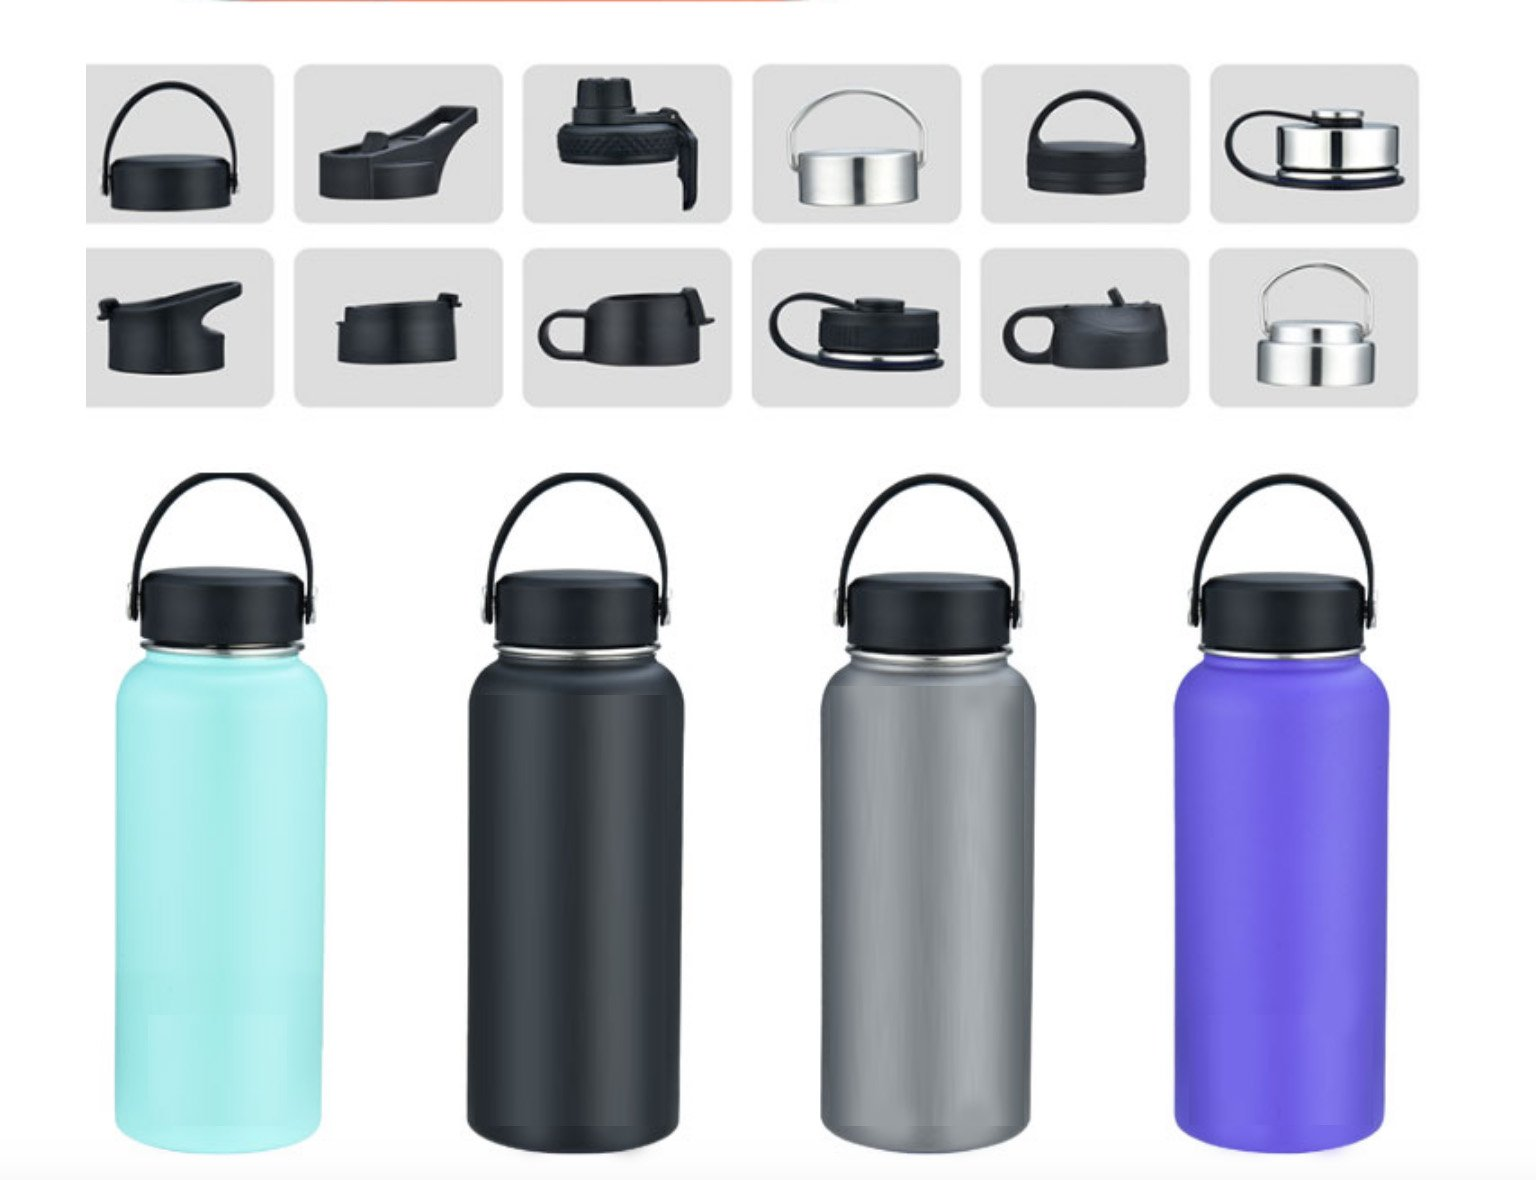 Hydro flask with different lid options